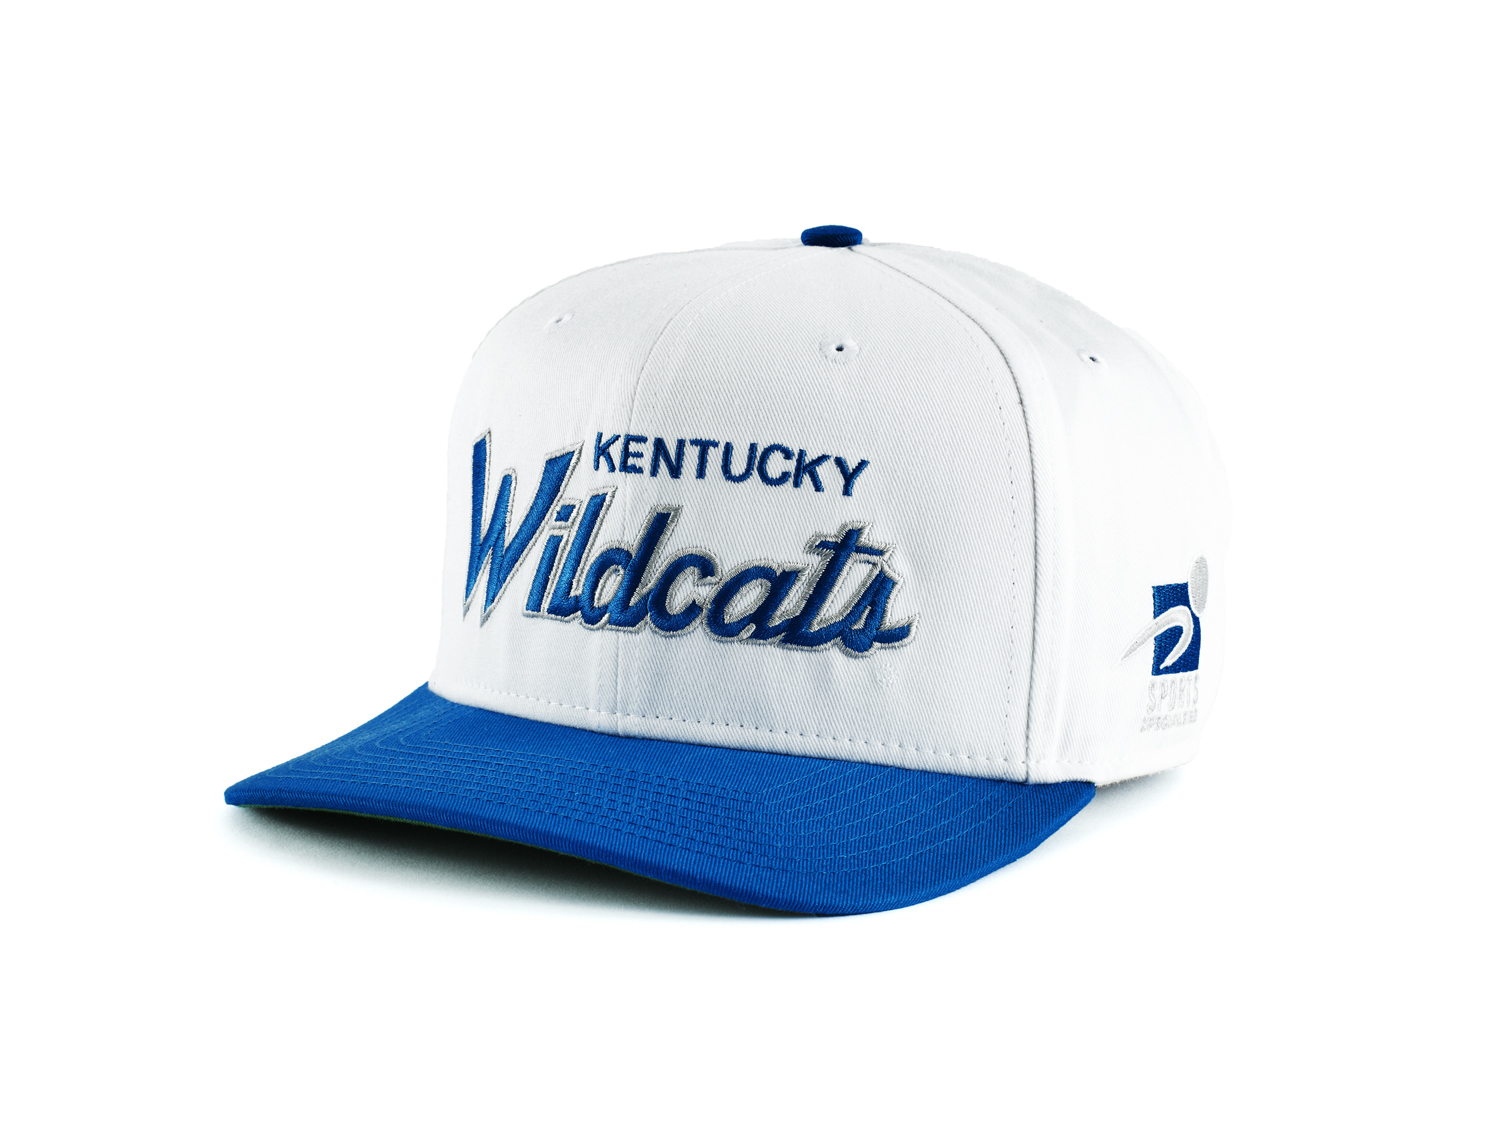 buy popular ac87c 1cd4e ... latest Sports Specialties collection of caps includes retro inspired  snapbacks for UCONN, Duke, Kentucky, Syracuse, North Carolina, Arizona and  Florida.